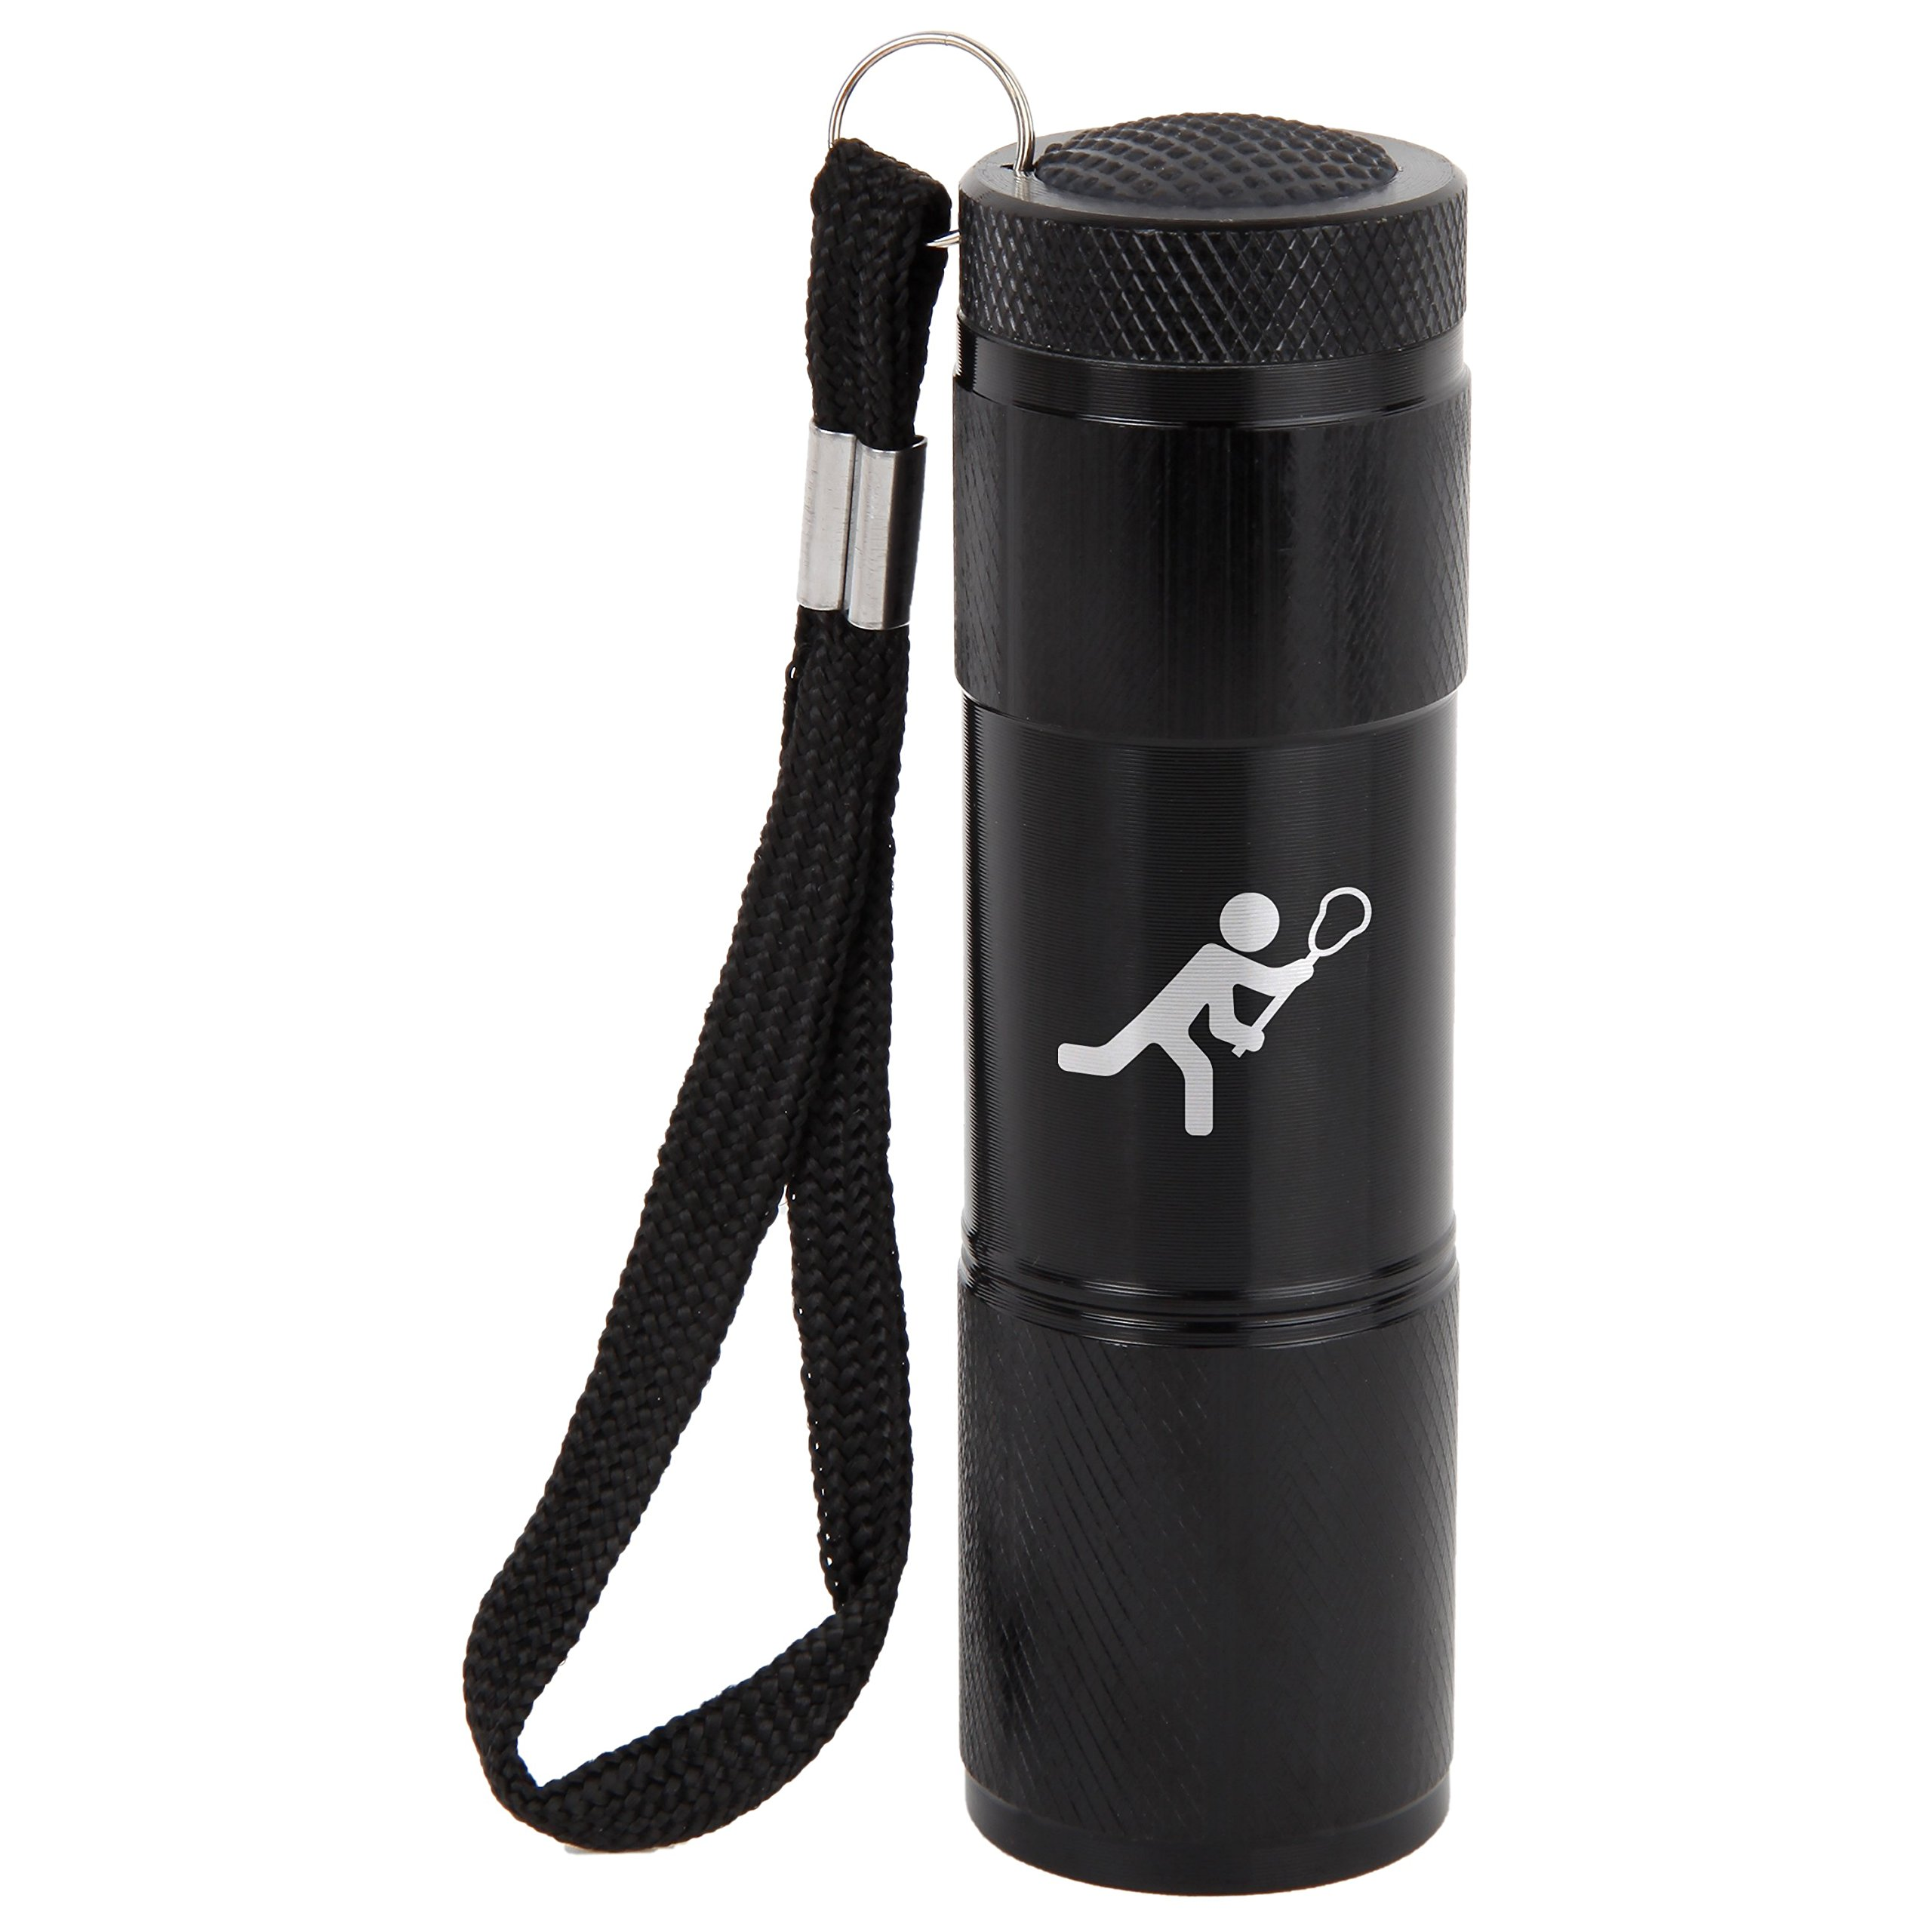 Lacrosse 9-Led Flashlight With Strap - Black Flashlight - Laser Engraved Design - Led Flashlight Keychain - Gift For All Occasions